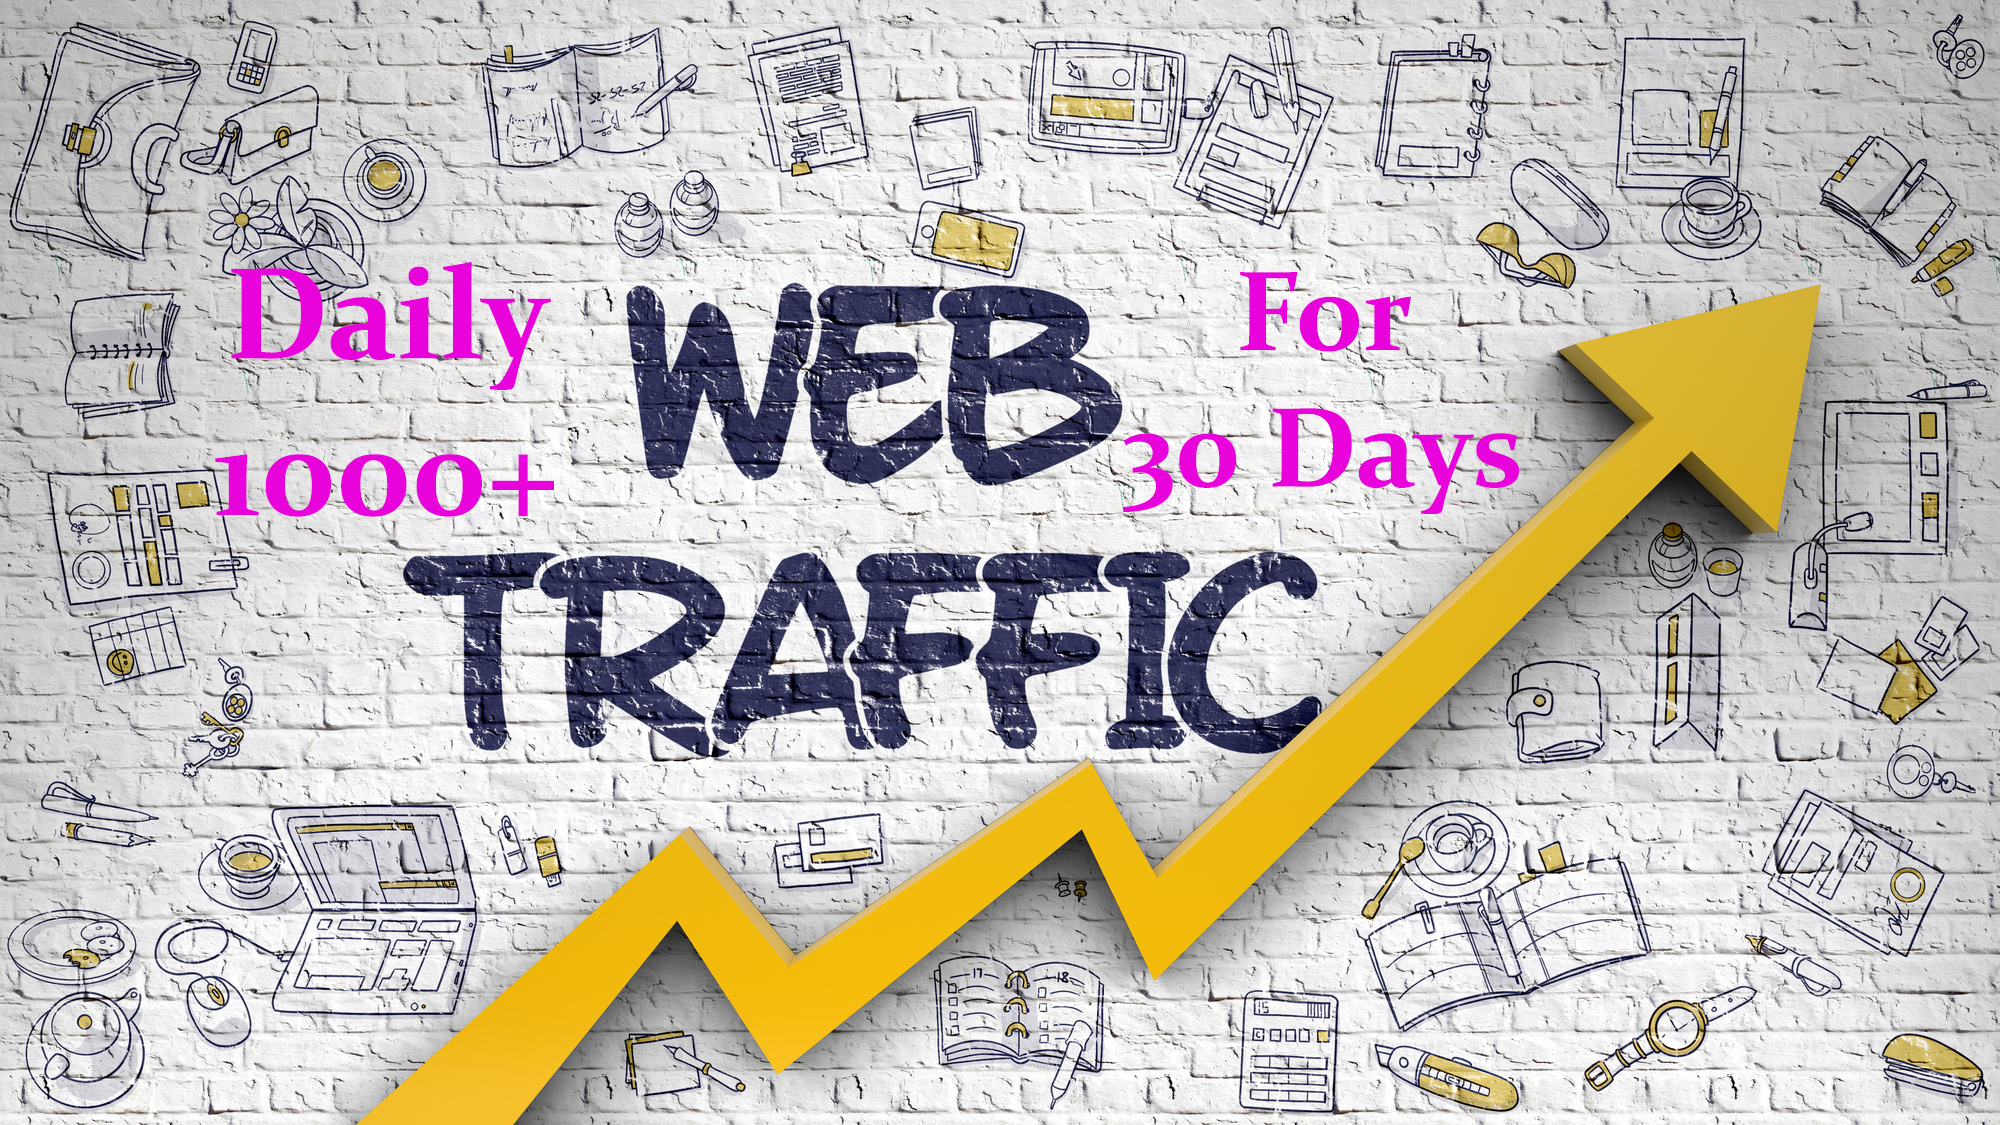 Provide daily 1000+ organic web traffic for 30 days